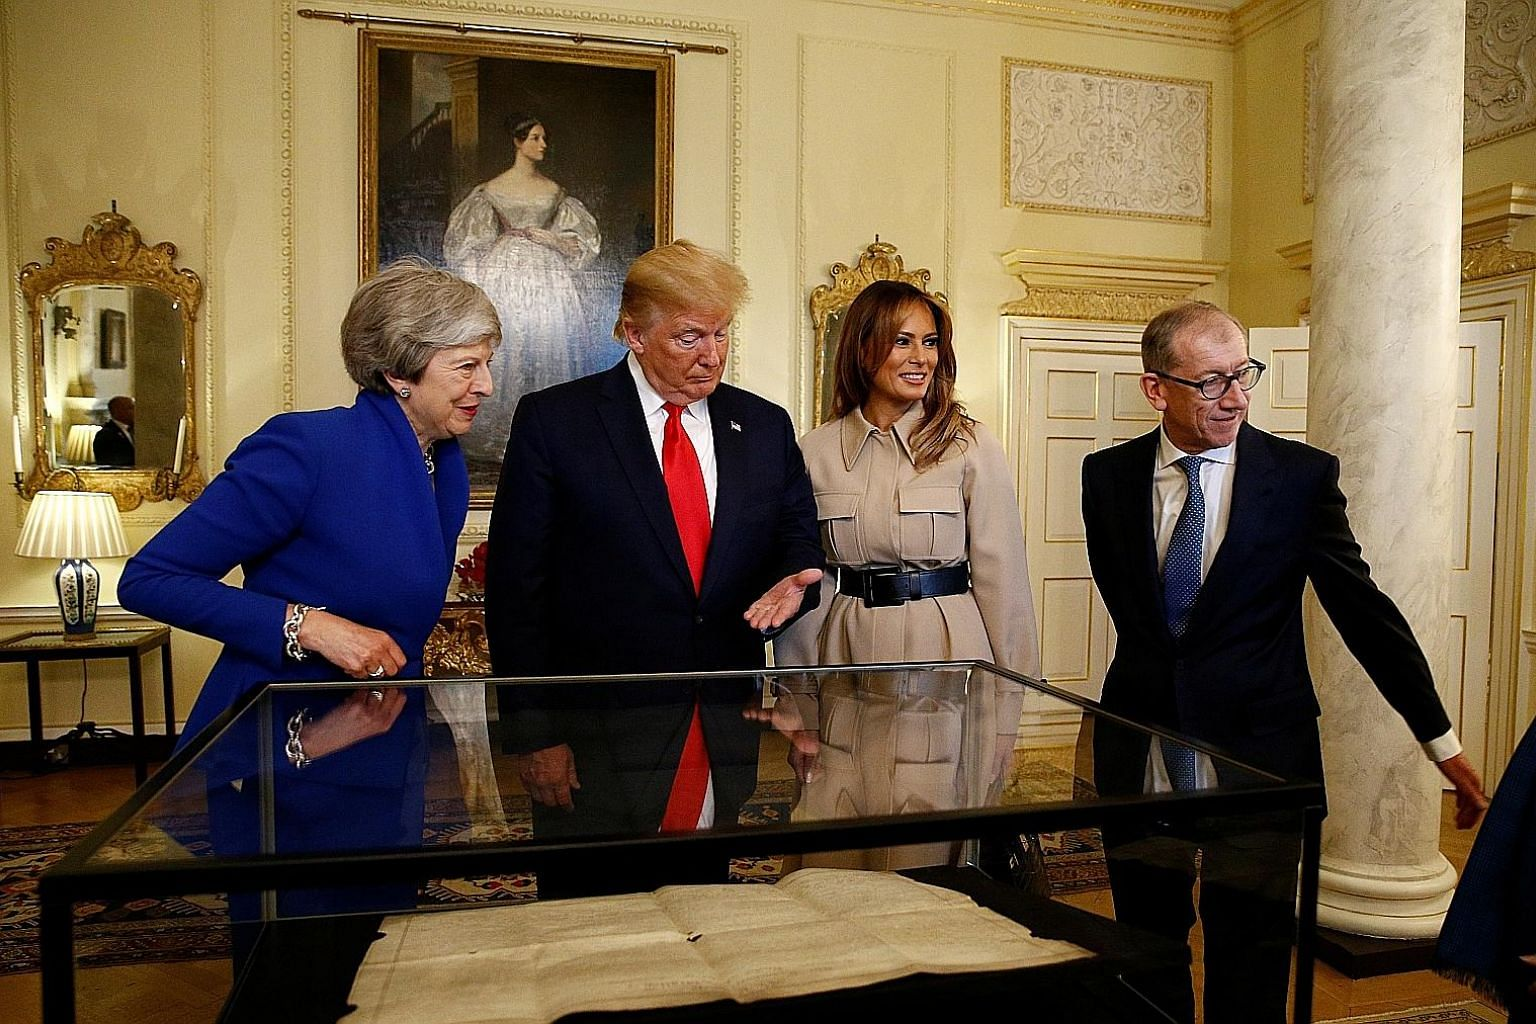 Demonstrators protesting against the visit of President Trump marching along the street in Whitehall in Central London yesterday, on the second day of his three-day state visit to Britain. PHOTO: AGENCE FRANCE-PRESSE Britain's Queen Elizabeth II, fla